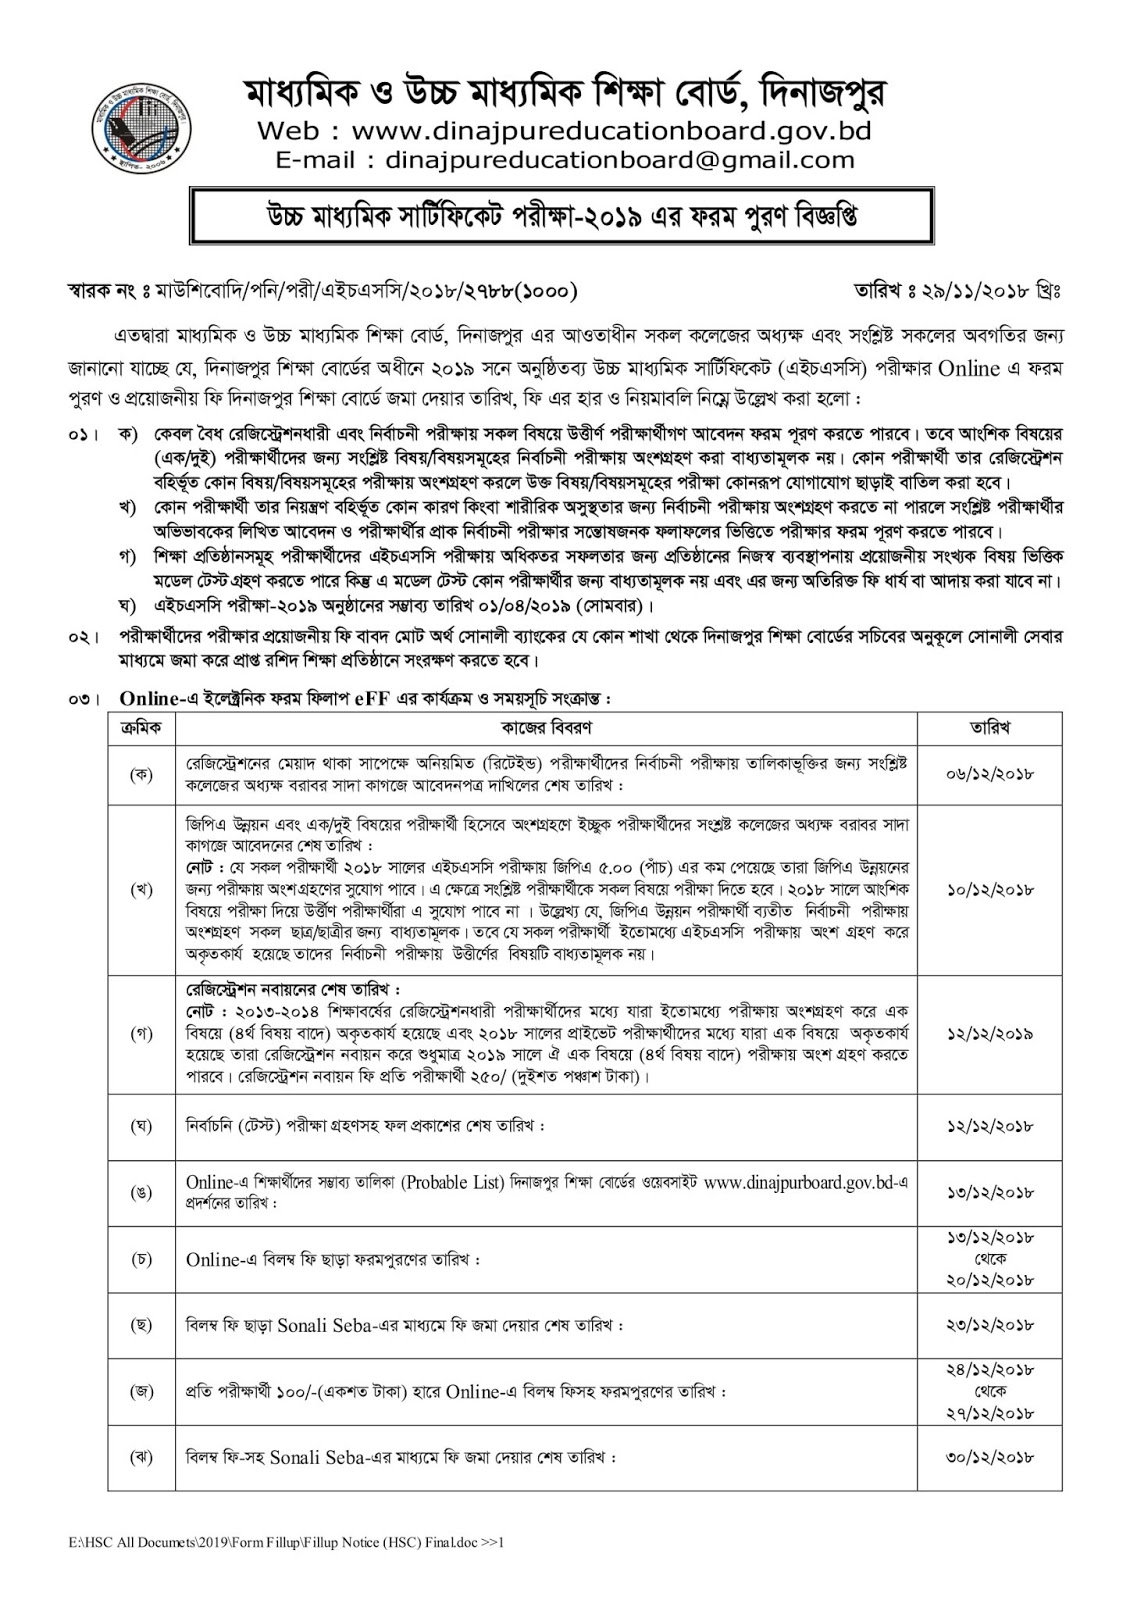 Dinajpur Board HSC EXAM 2019 Form Fill-Up Notice 2018